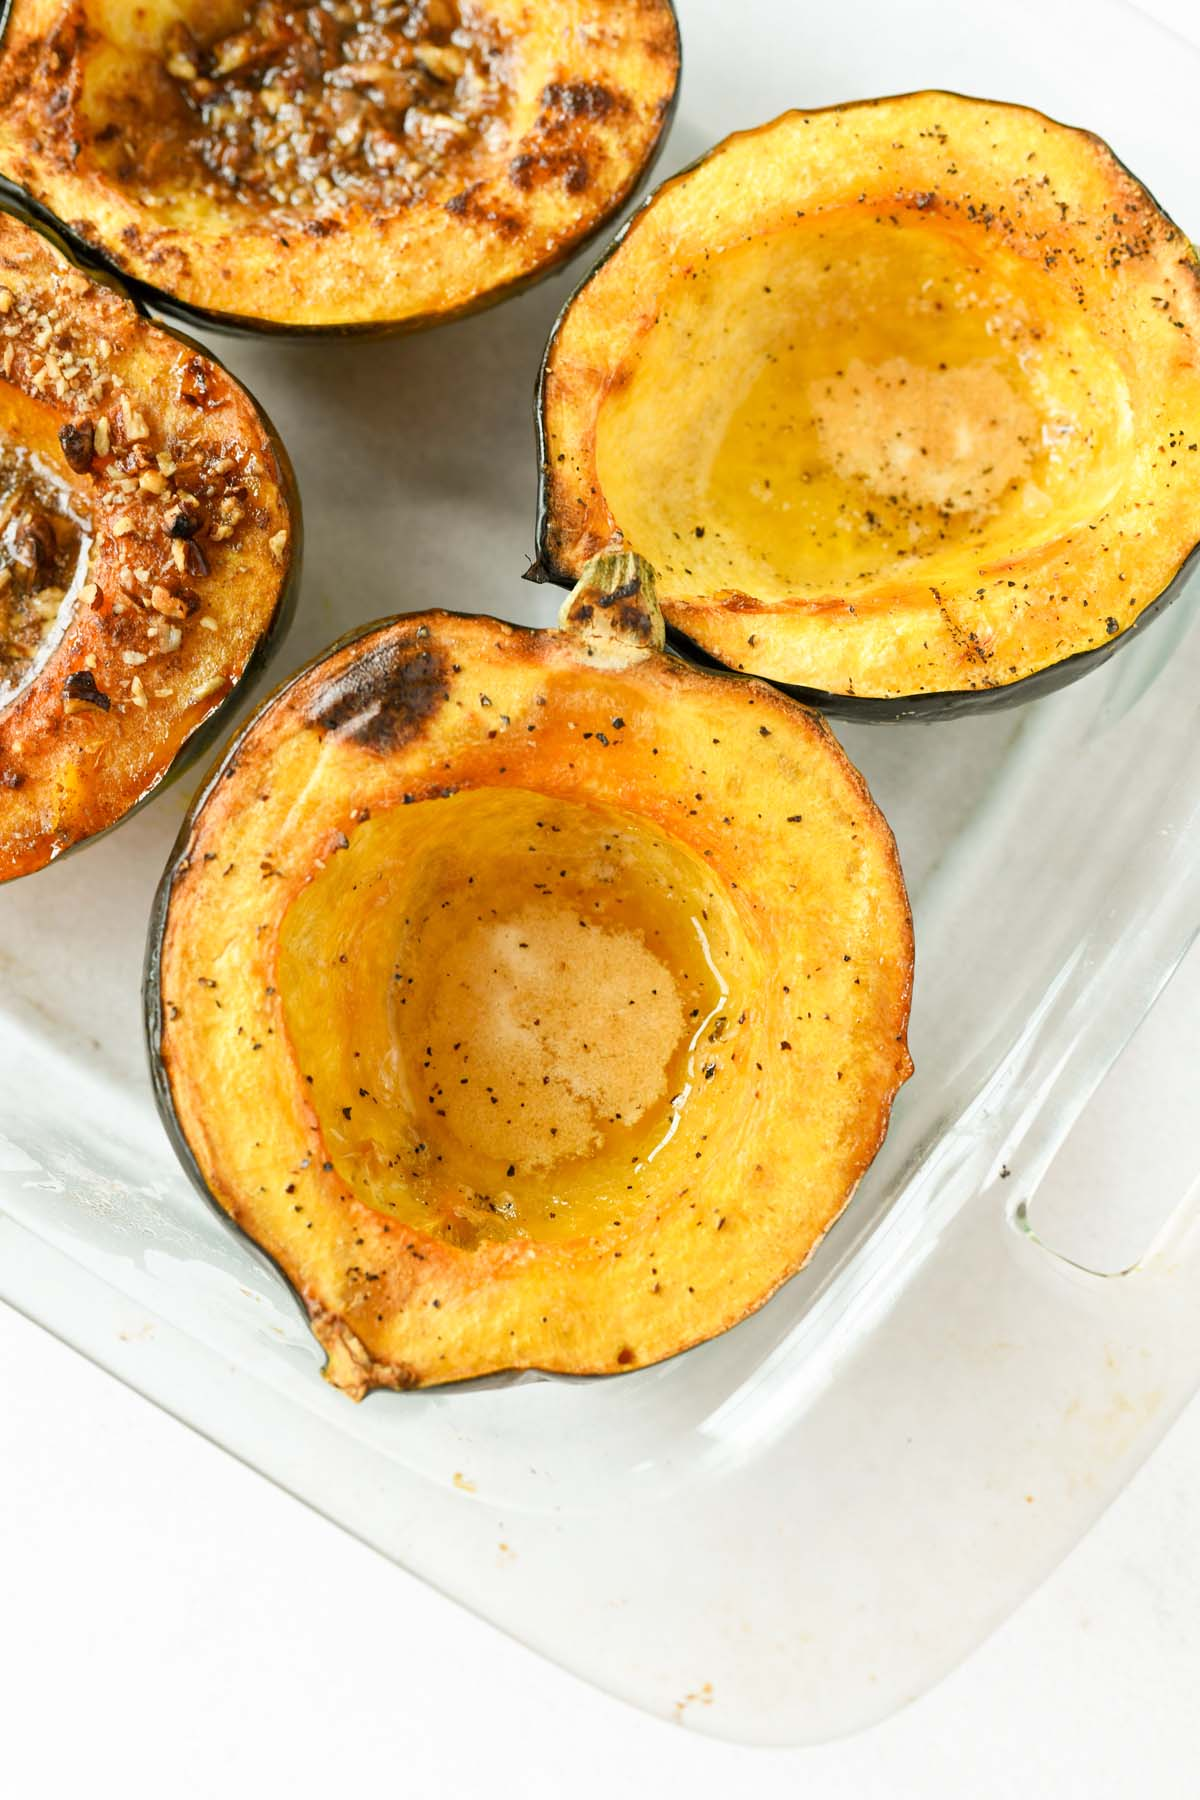 Honey buttered acorn squash in a clear glass baking dish.